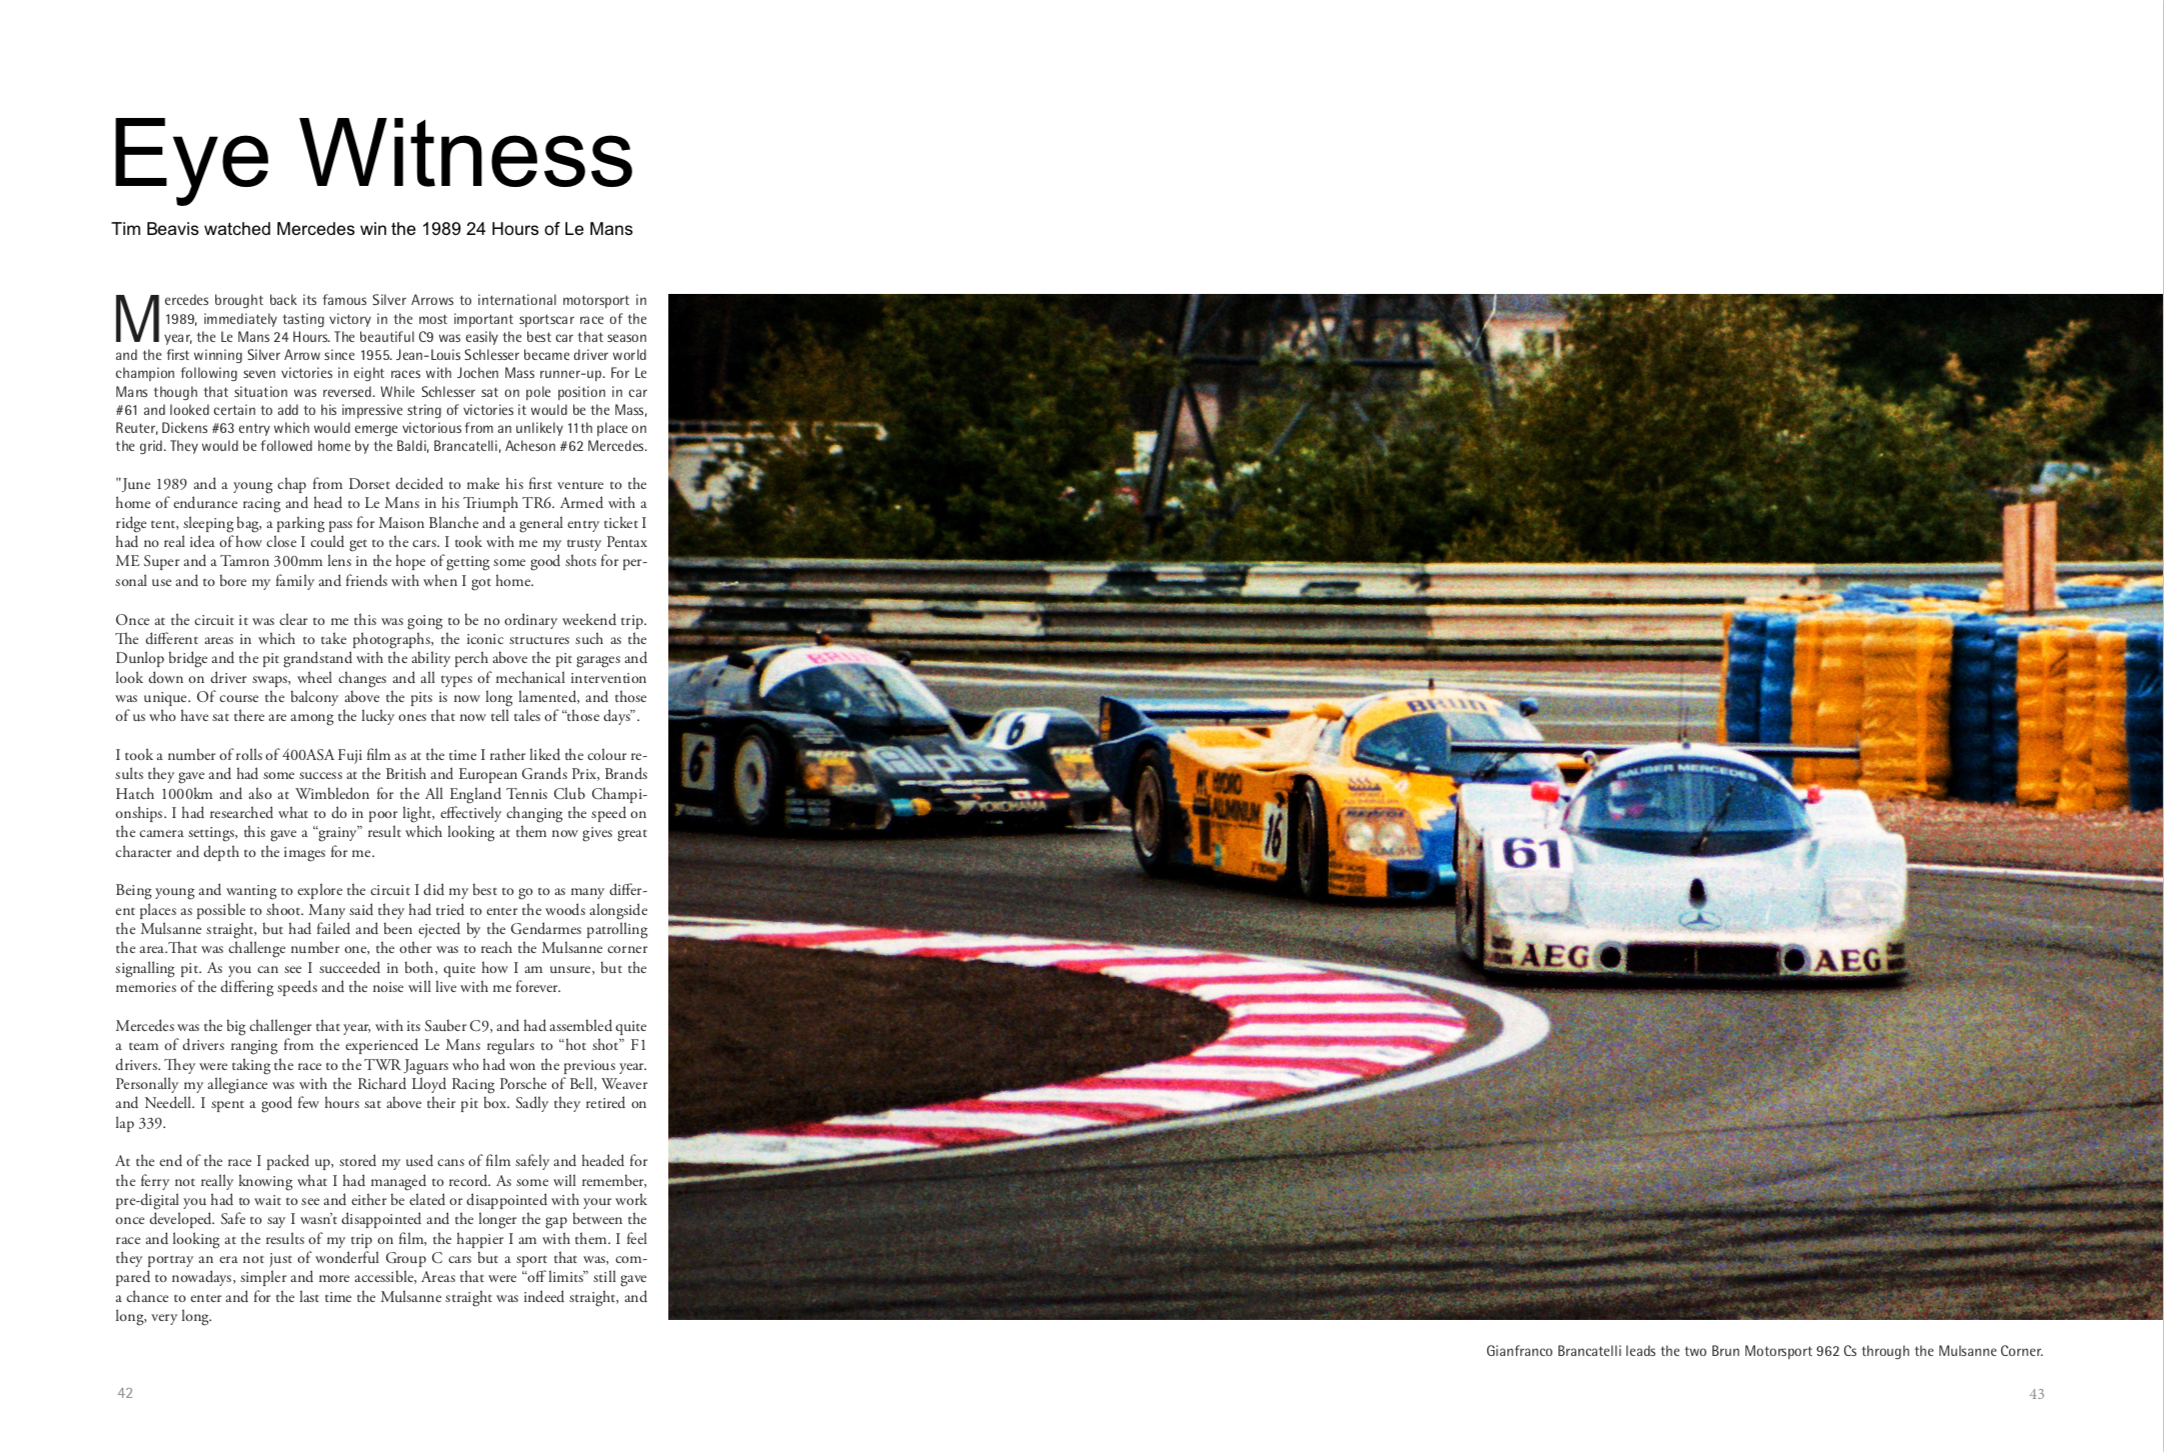 Eye Witness. The 1989 Le Mans 24 Hours